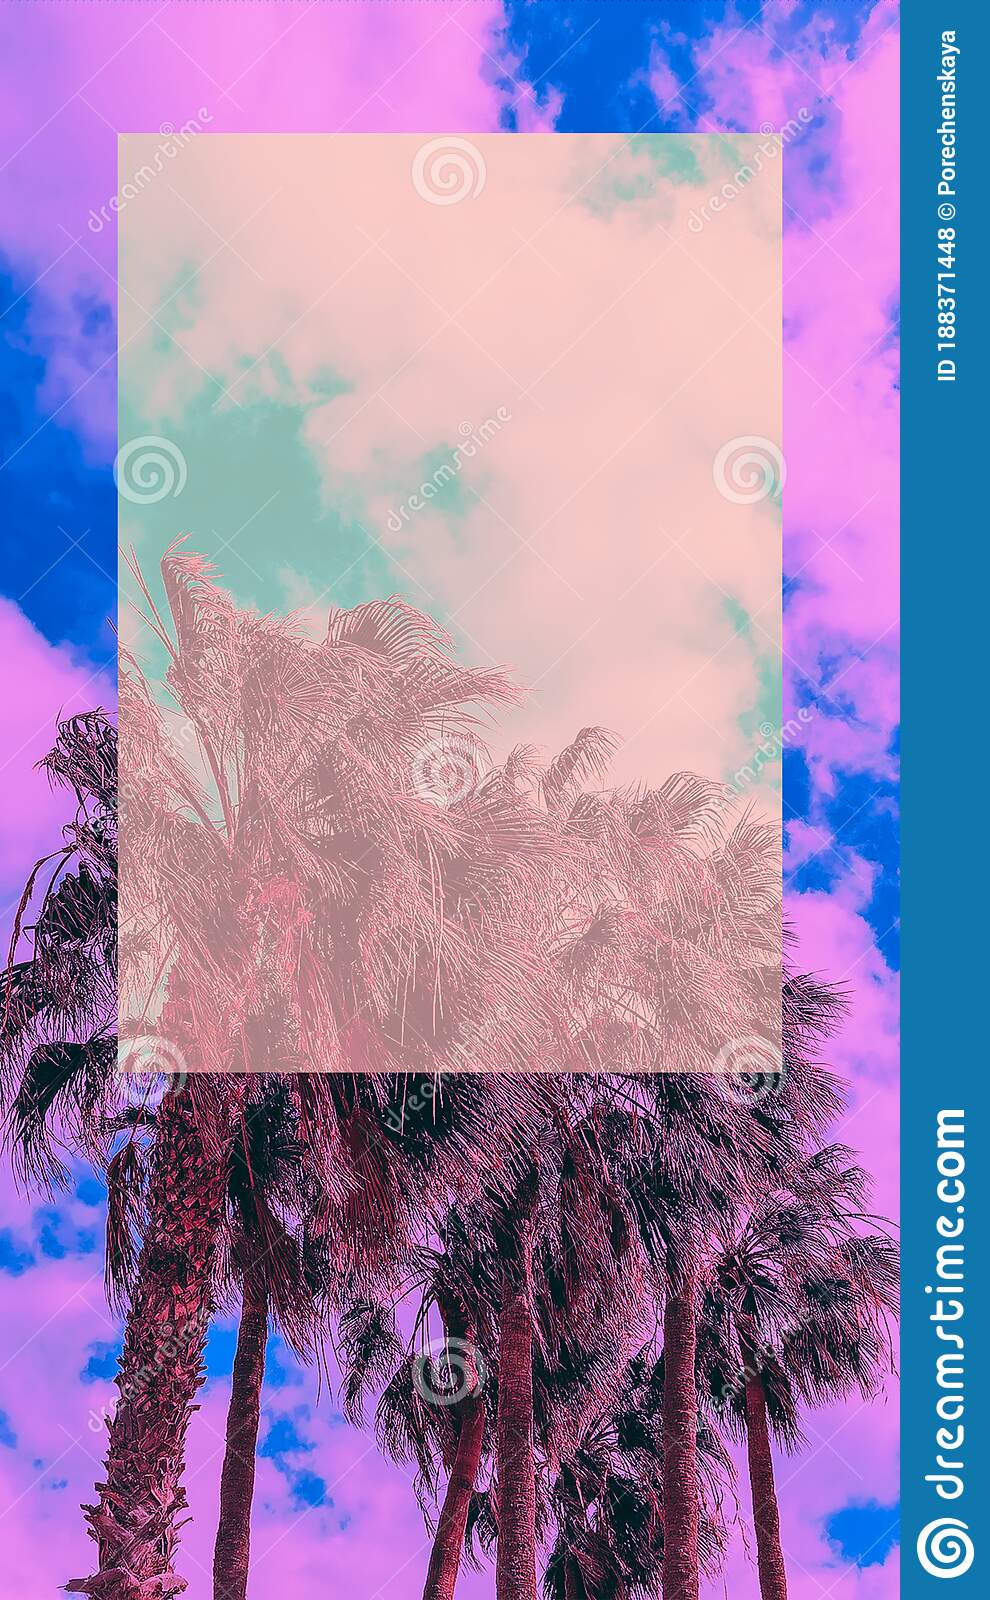 Tropical Palm Wallpaper For Smart Phones And Desktop Travel Fashion Vibes Stock Photo Image Of Plant Tree 188371448